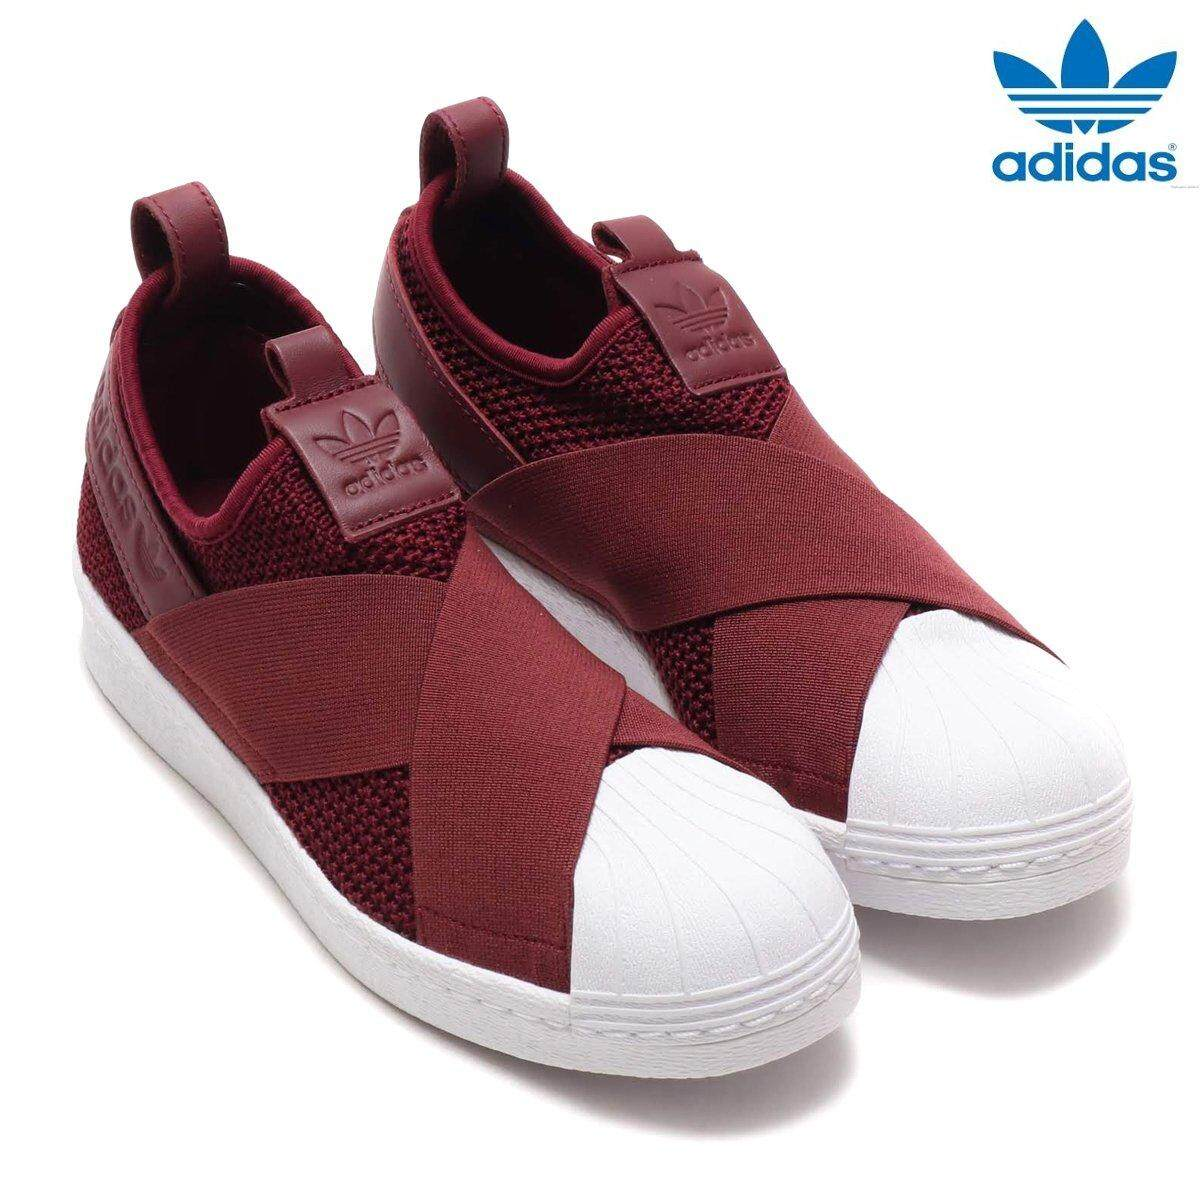 30eab92856c00 Adidas New Originals Superstar Slip-on B37371 Red Night Shoes